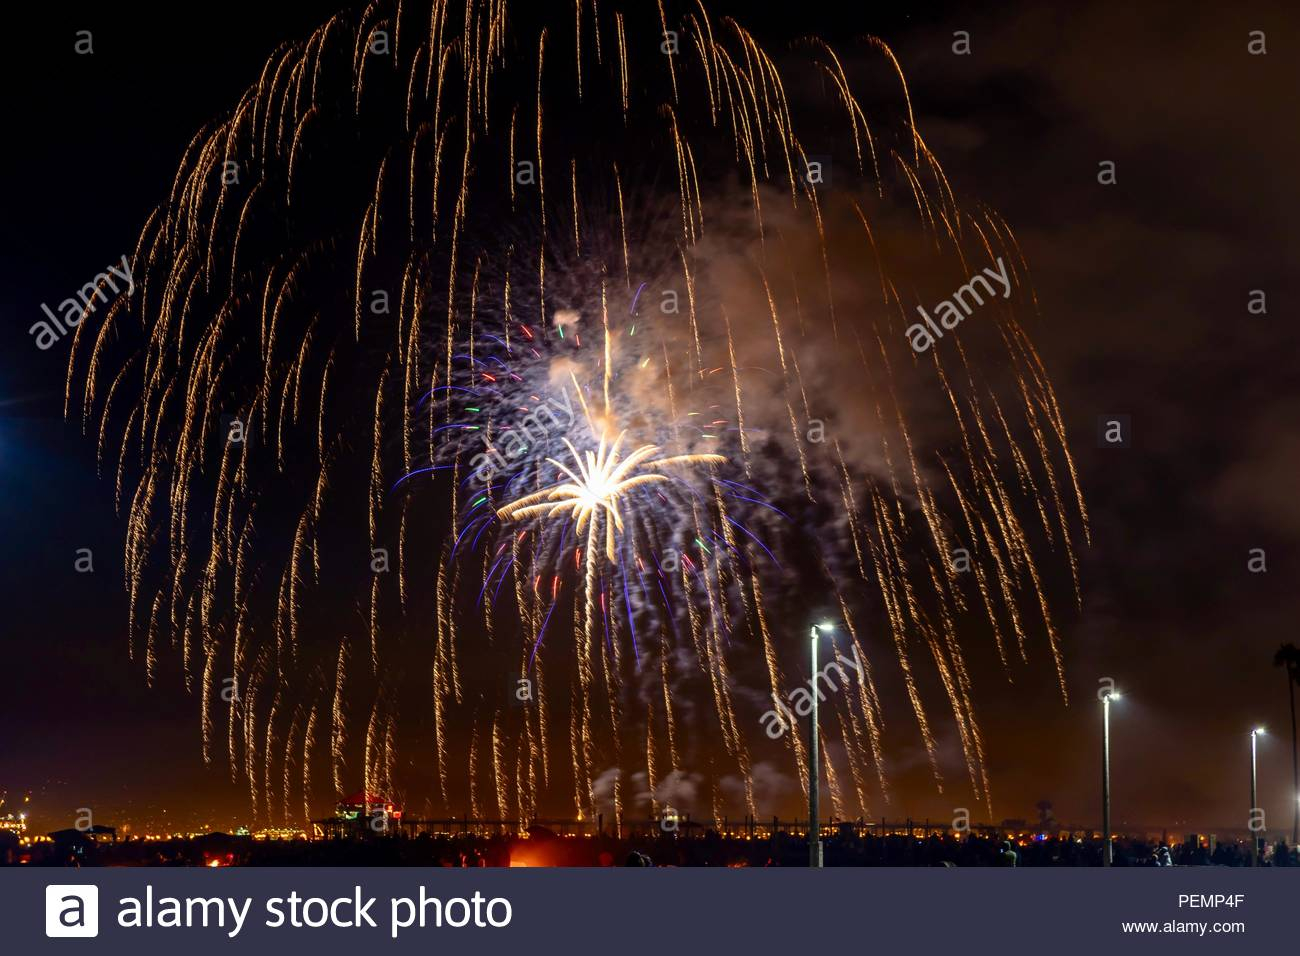 Exposures Stock Photos & Exposures Stock Images – Page 2 – Alamy Intended For Huntington Beach Fireworks Calendar